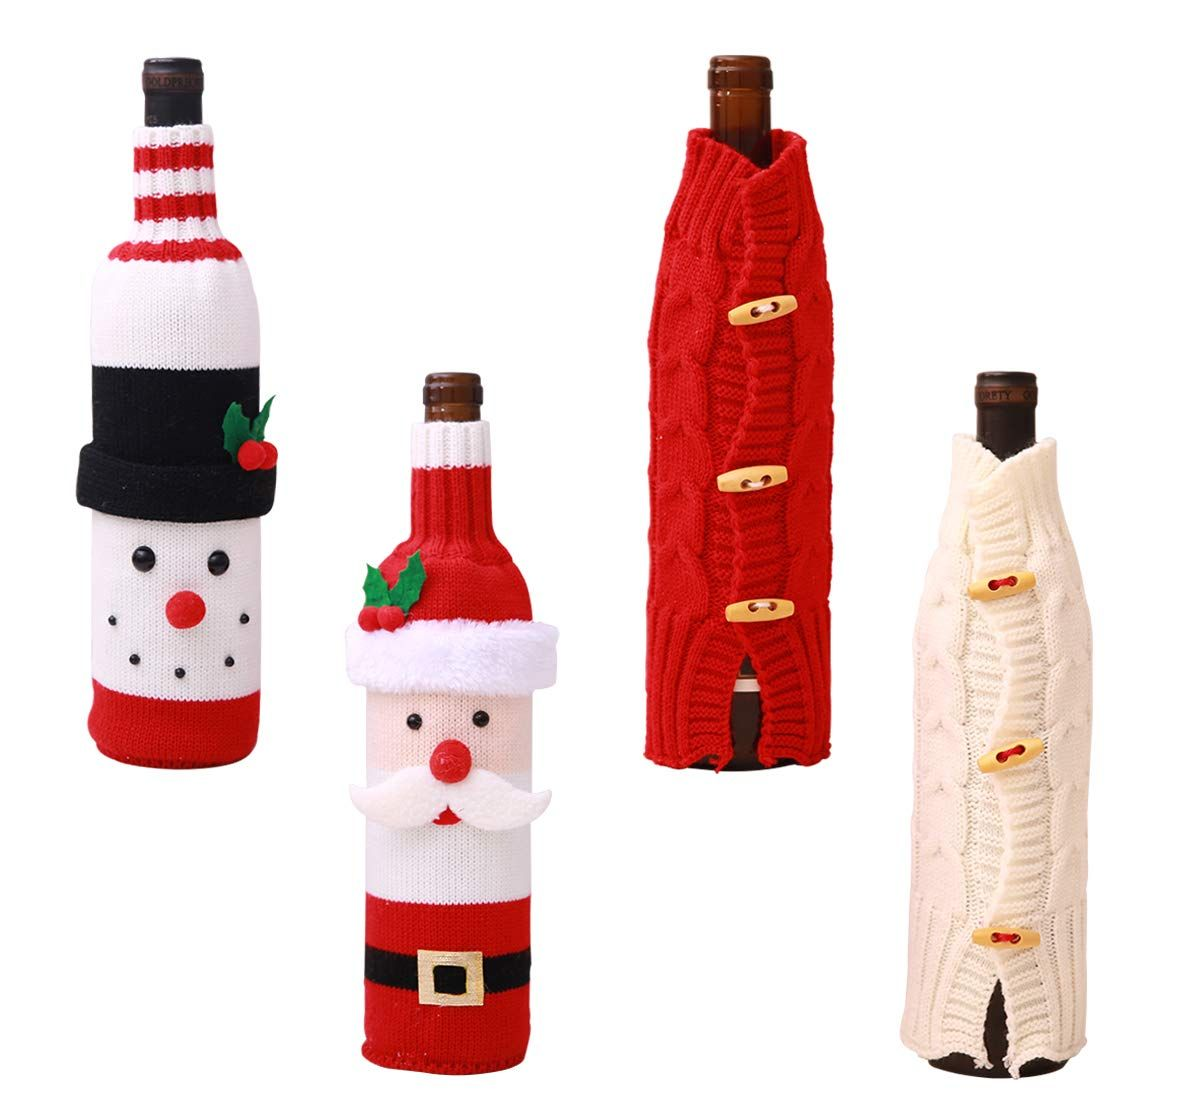 Christmas Wine Bottle Cover Knitted Wine Sweaters Cover Dress Xmas Dinner Table Christmas Wine Bottles Christmas Crochet Patterns Christmas Wine Bottle Covers